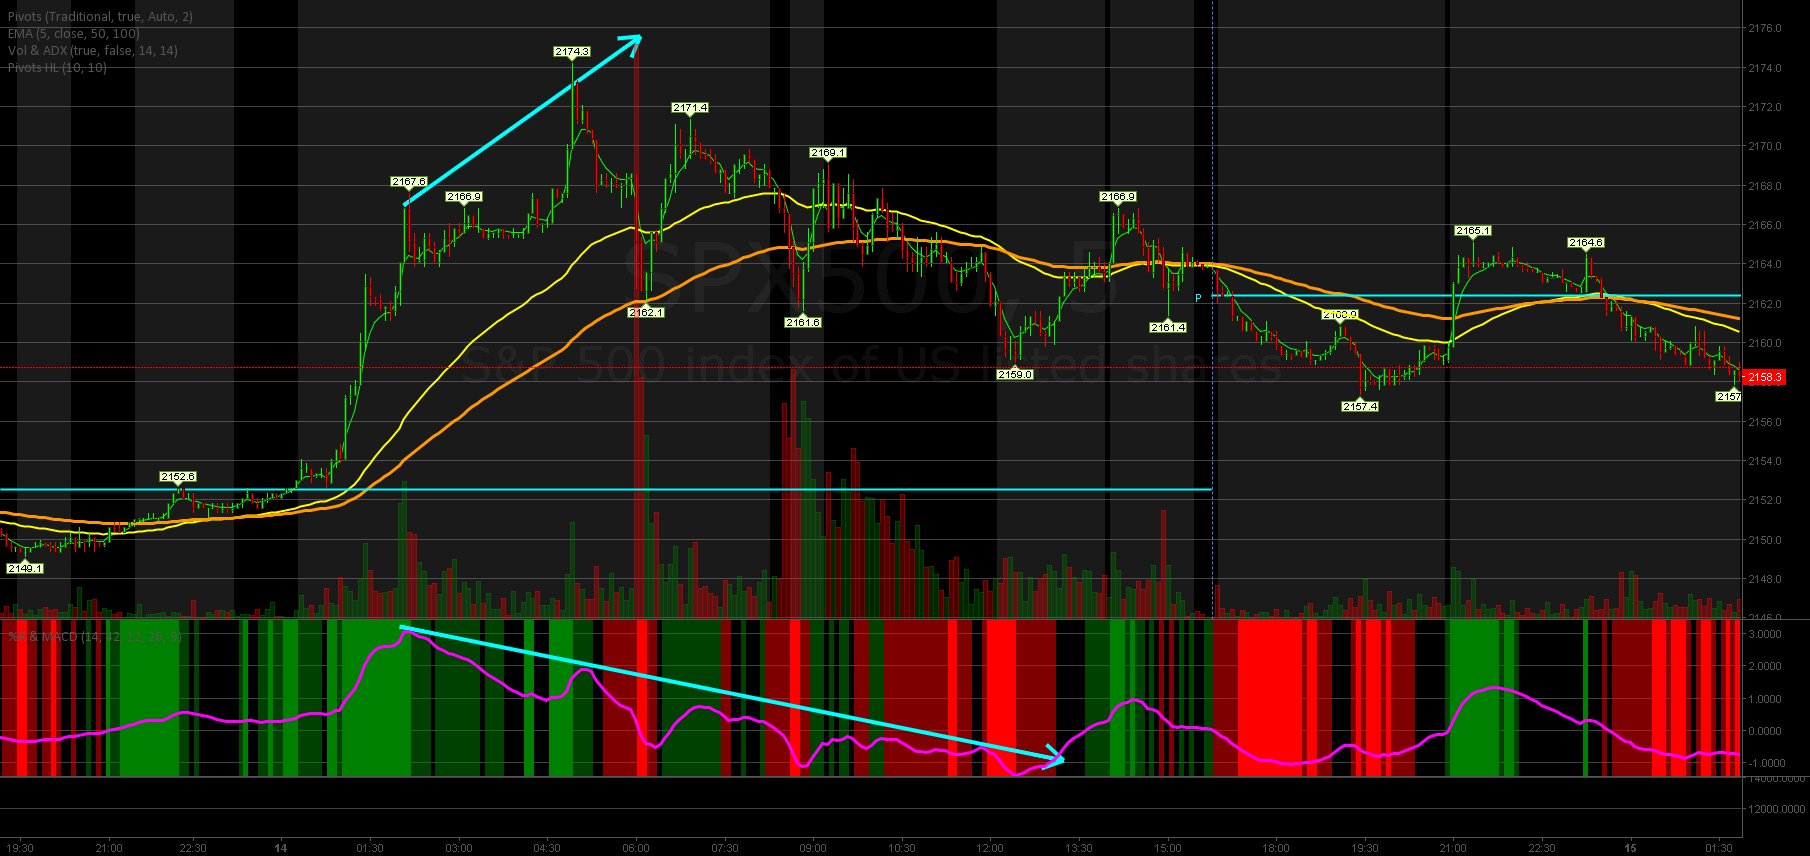 Willams %R extreme and MACD Divergence